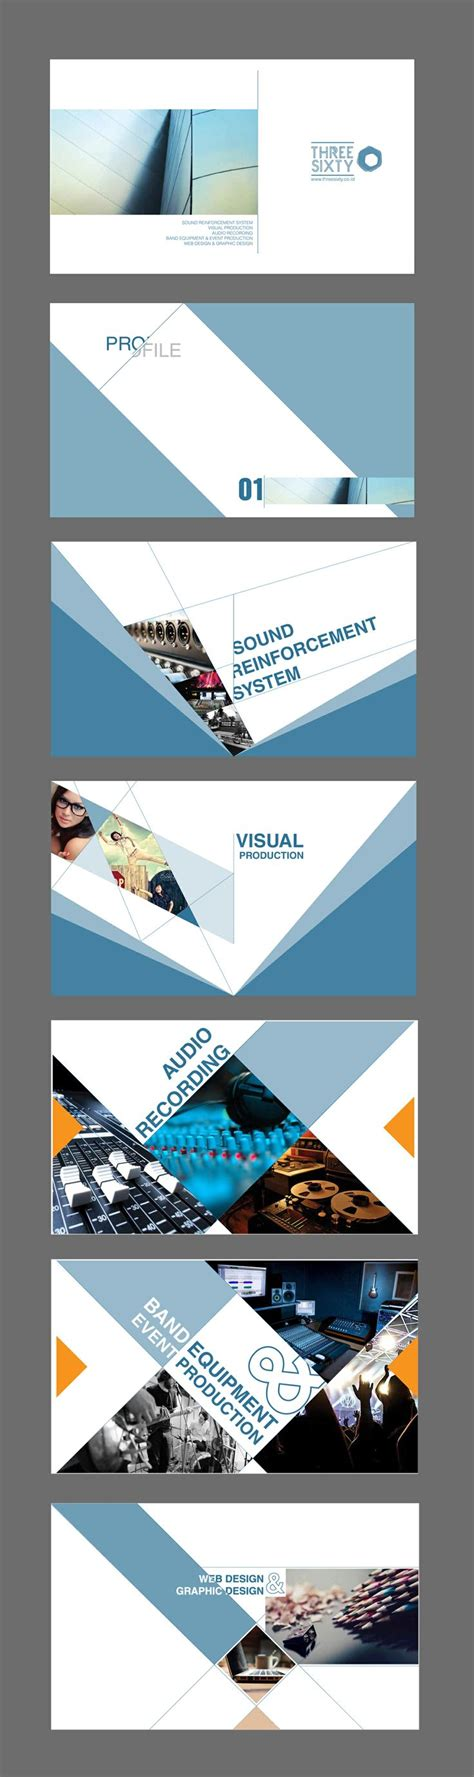 creative company profile layout pdf threesixty company profile template creative print